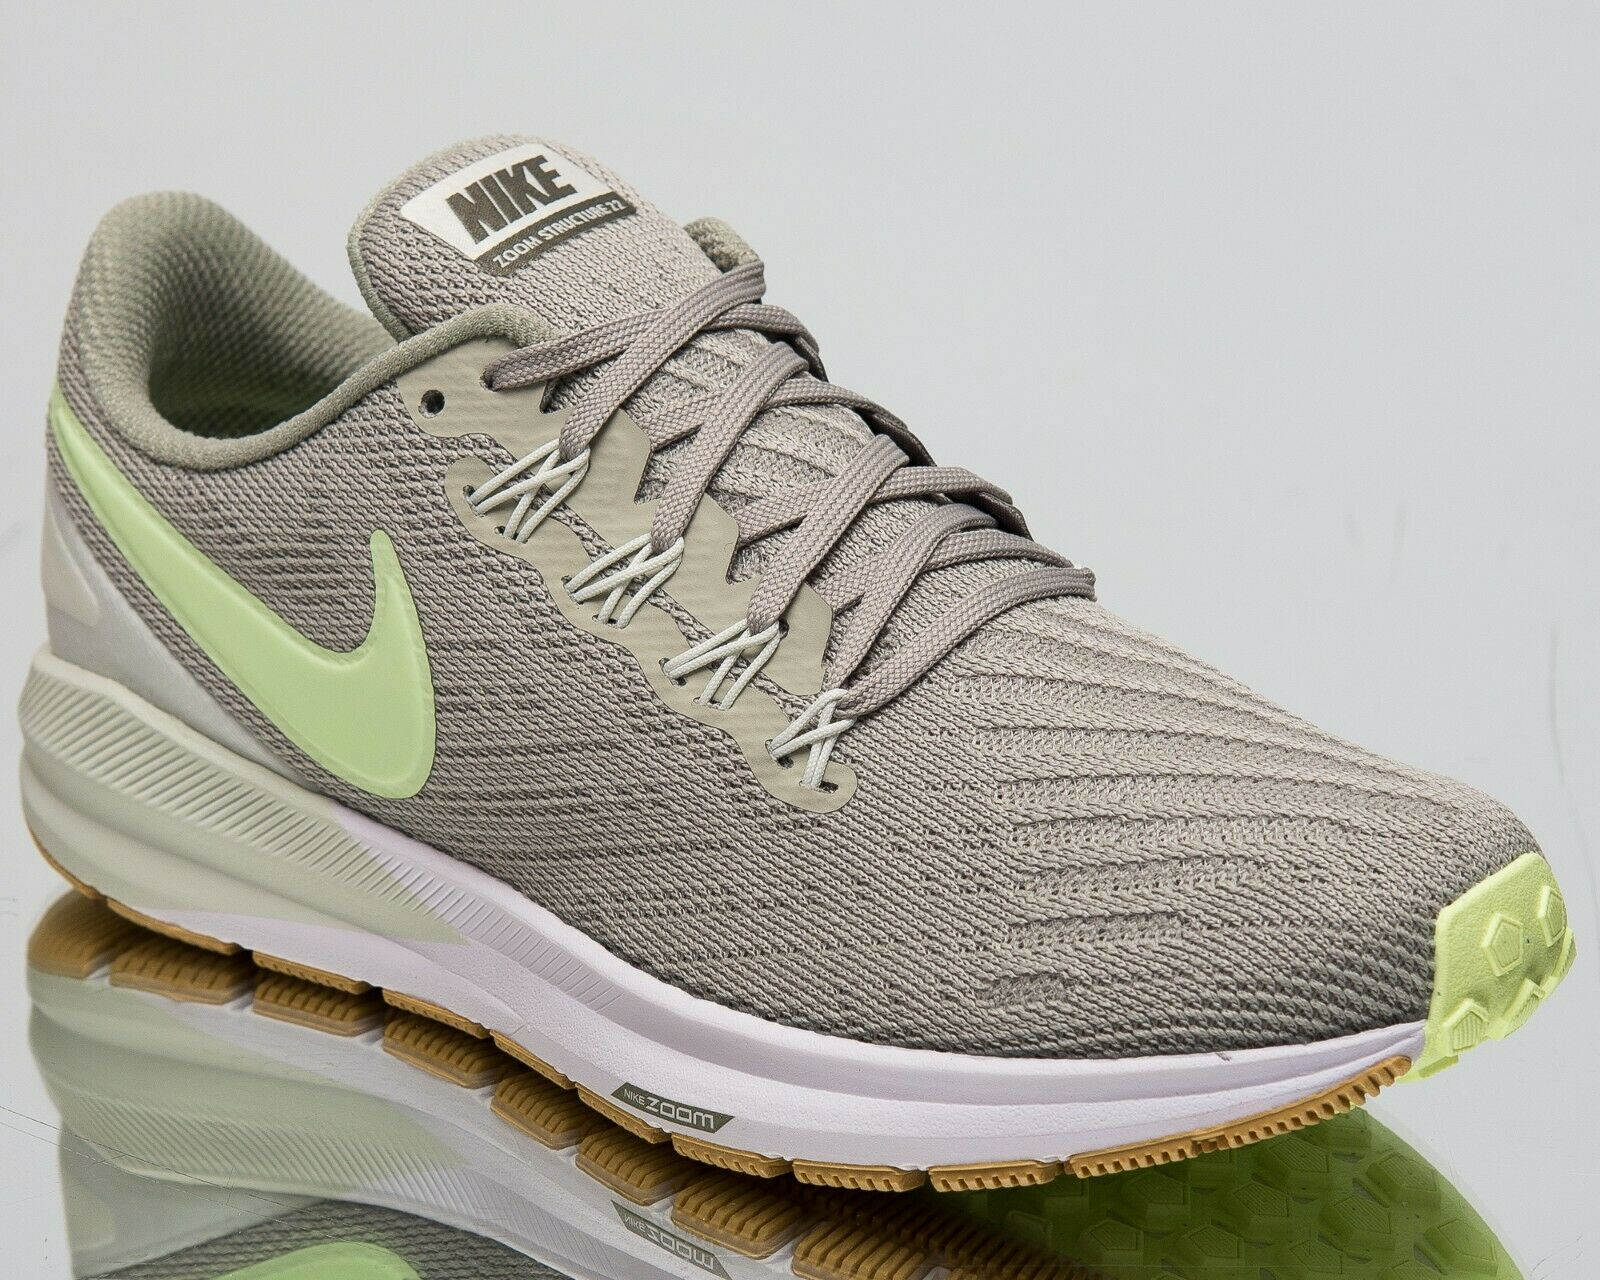 Nike Wouomo Air Zoom Structure 22 New Running scarpe Spruce Fog Volt AA1640-300